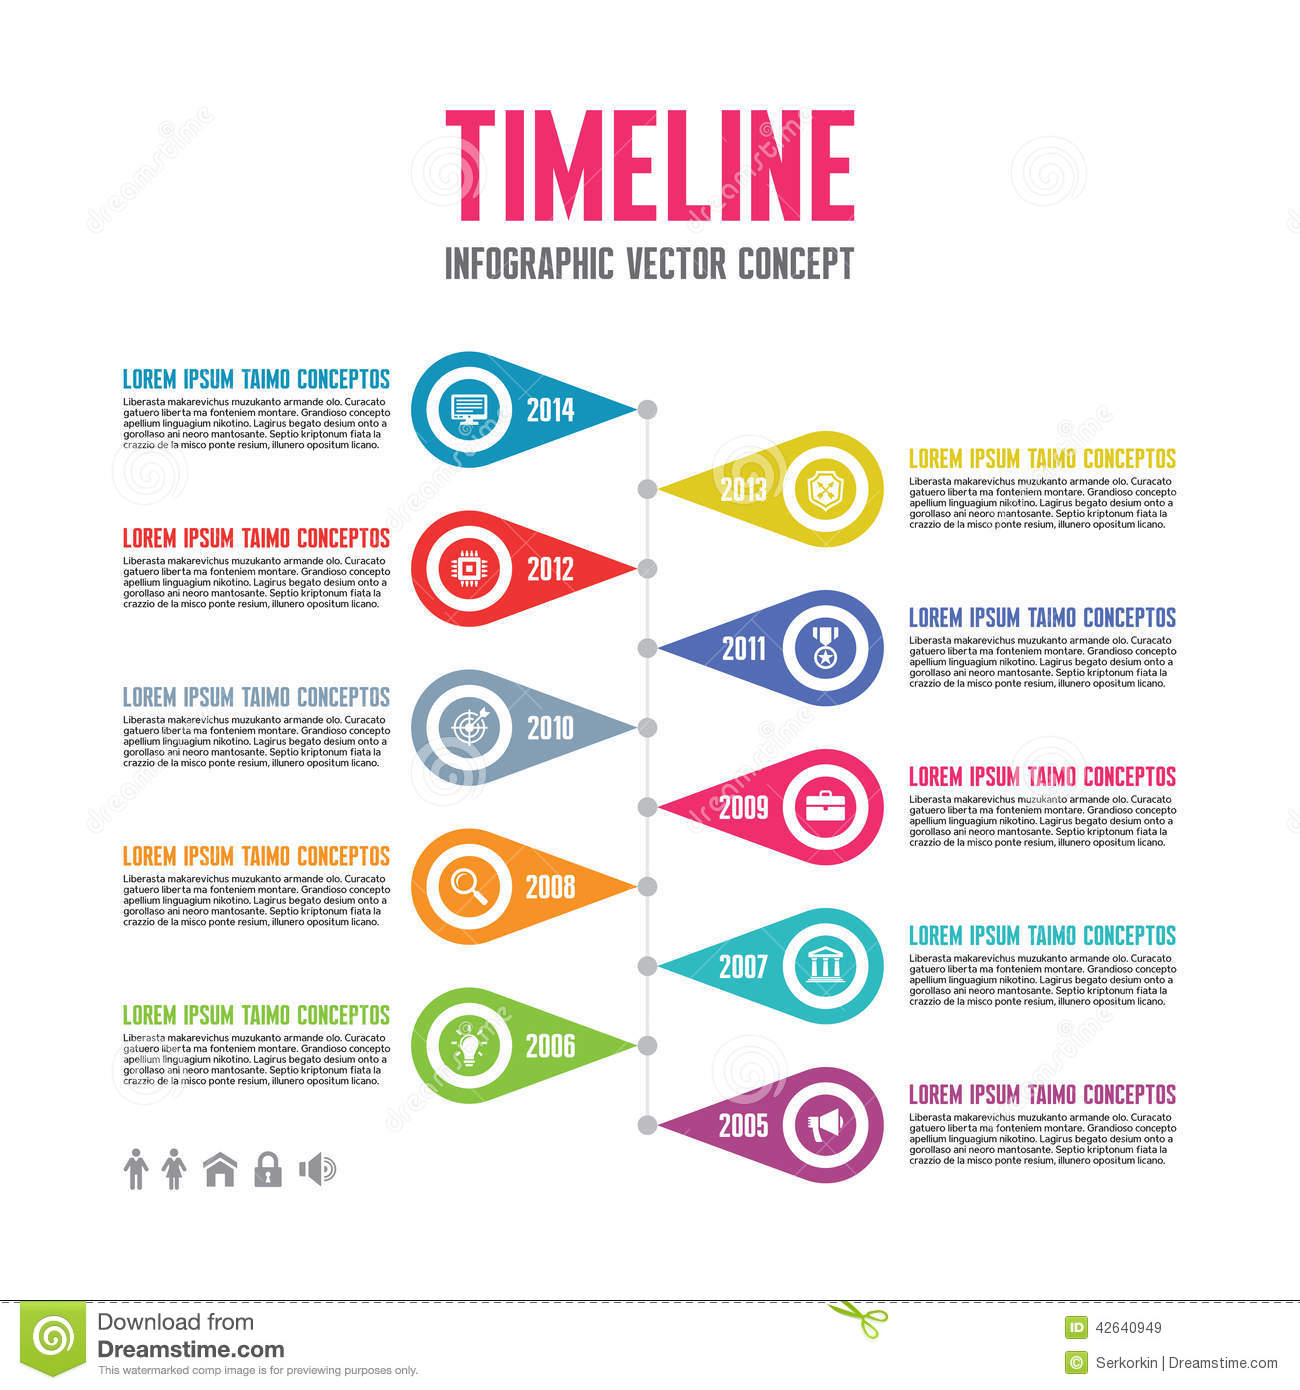 Kmart Application Apply Online For Your Local Area Infographic Vector Concept In Flat Design Style Timeline